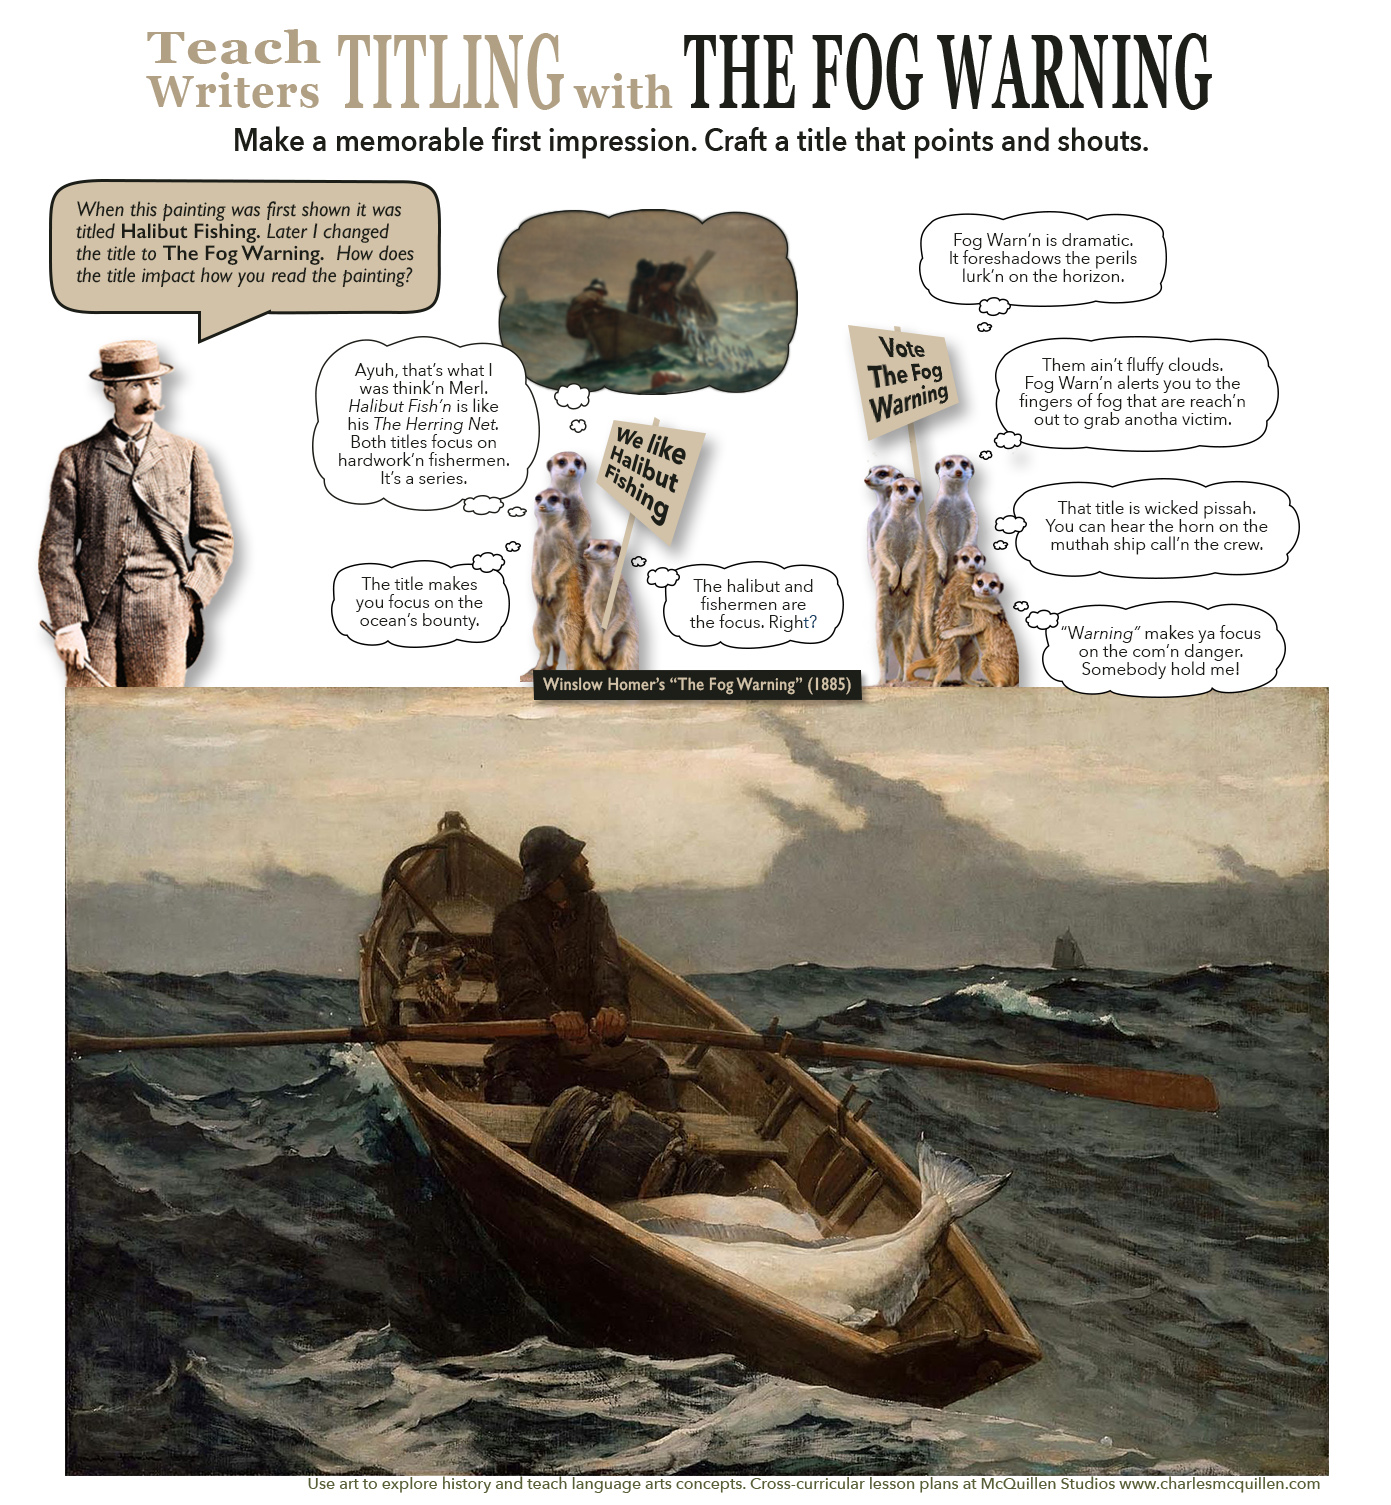 Use Winslow Homer's The Fog Warning to teach the importance of thoughtful titles